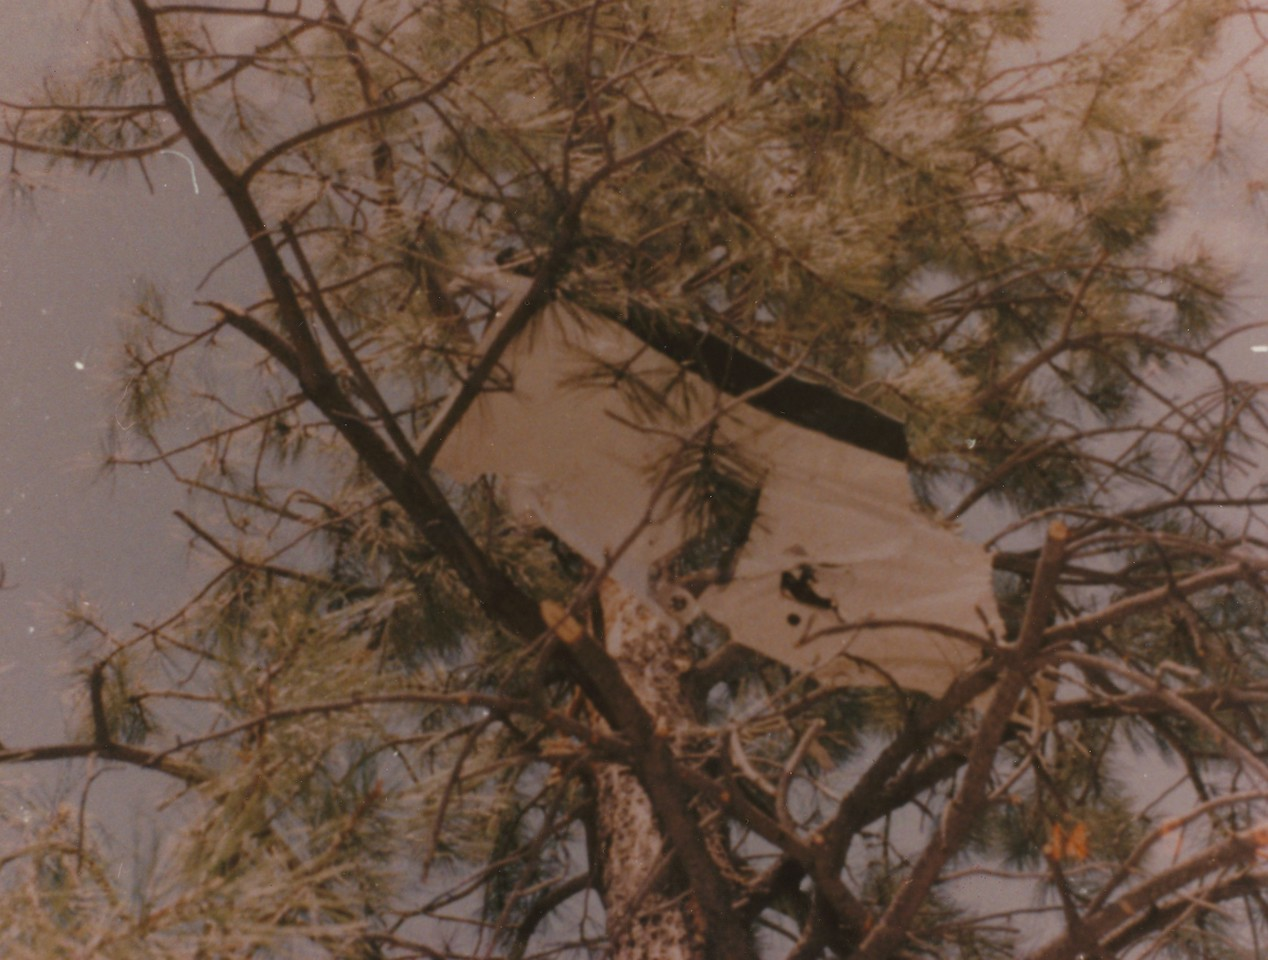 FIRST POINT OF IMPACT<br /> <br /> This horizontal stabilizer fragment was wedged about 60 feet in the top of a pine tree. <br /> <br /> With extensive tree impact damage to the aircraft's tail section, the aircraft was no longer controllable and impacted nose first into the ground.